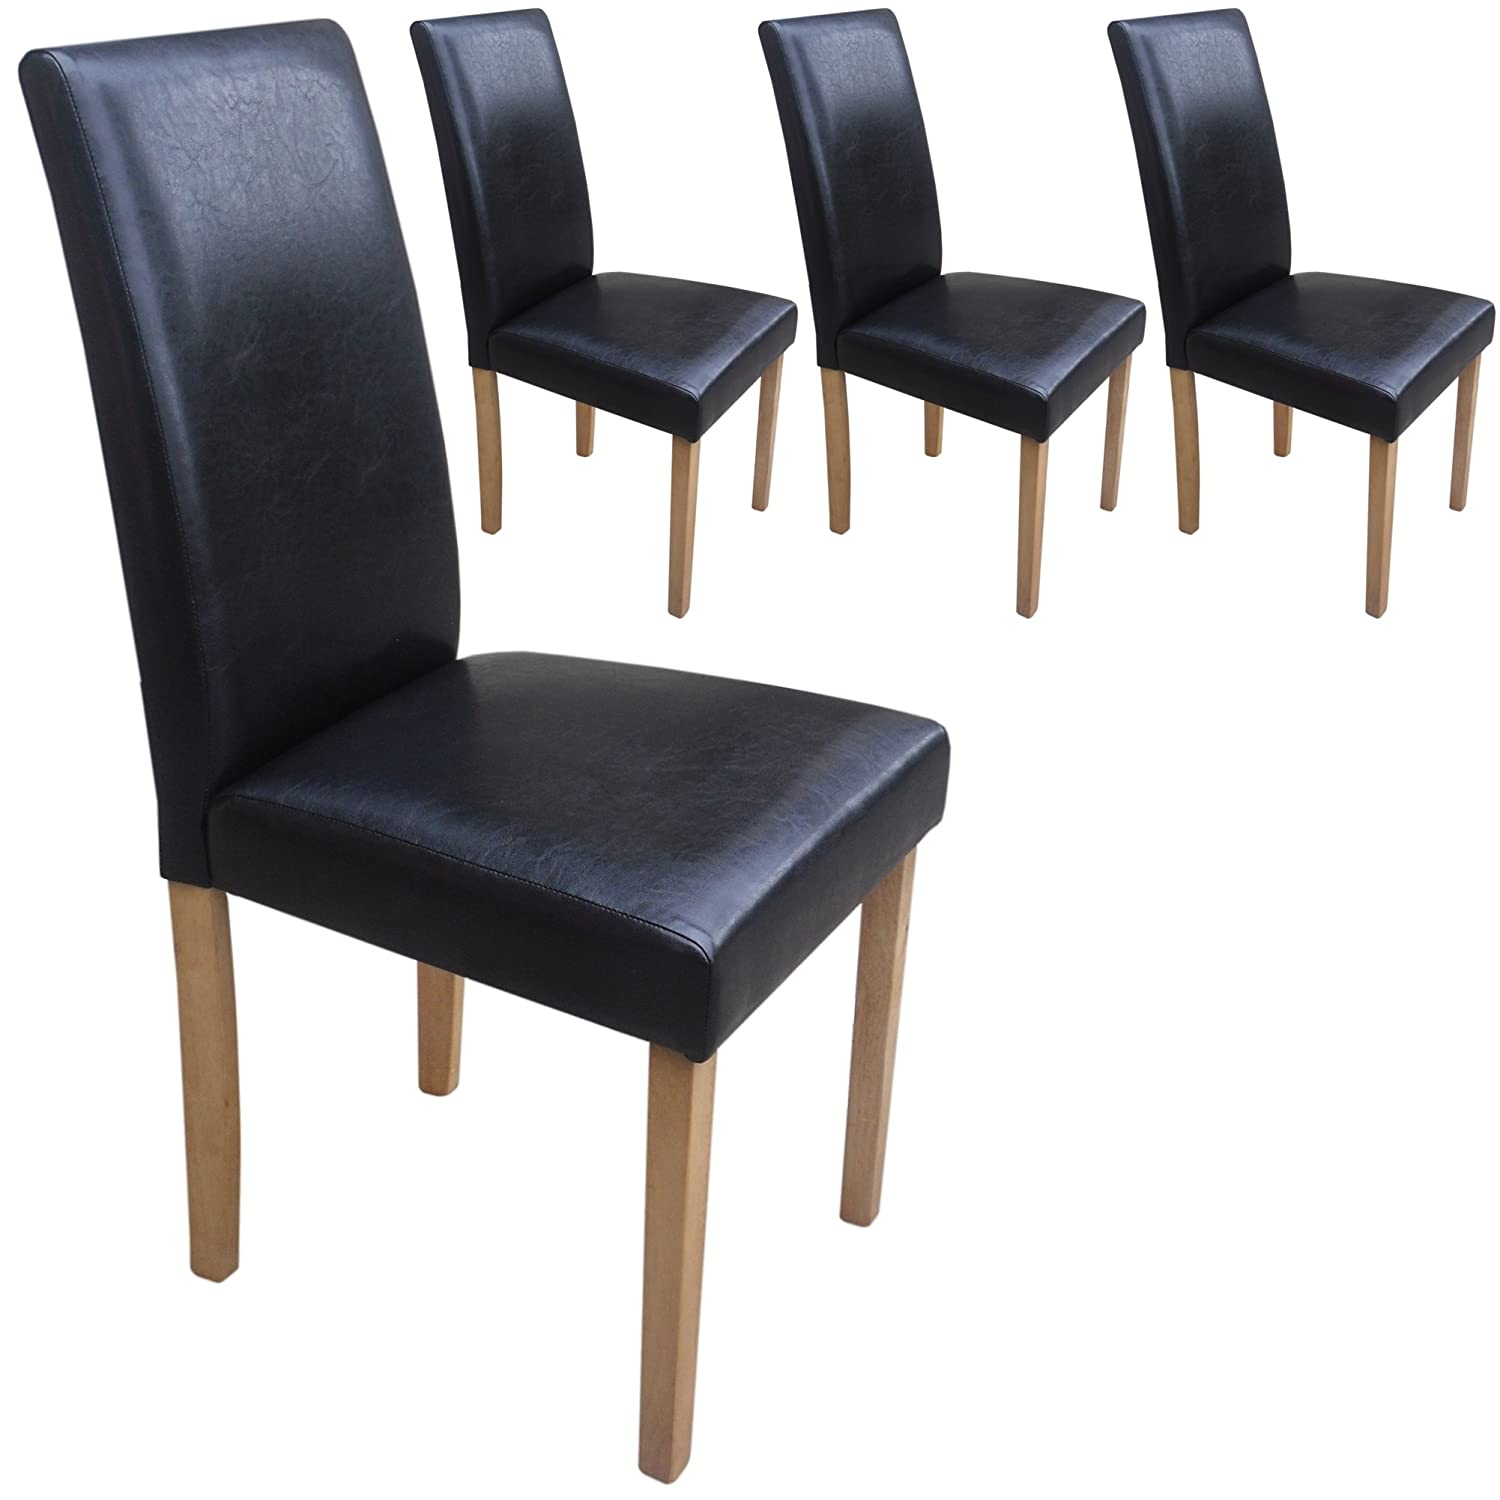 Set of 4 Faux Leather Dining Chairs Black With Padded Seat & Oak